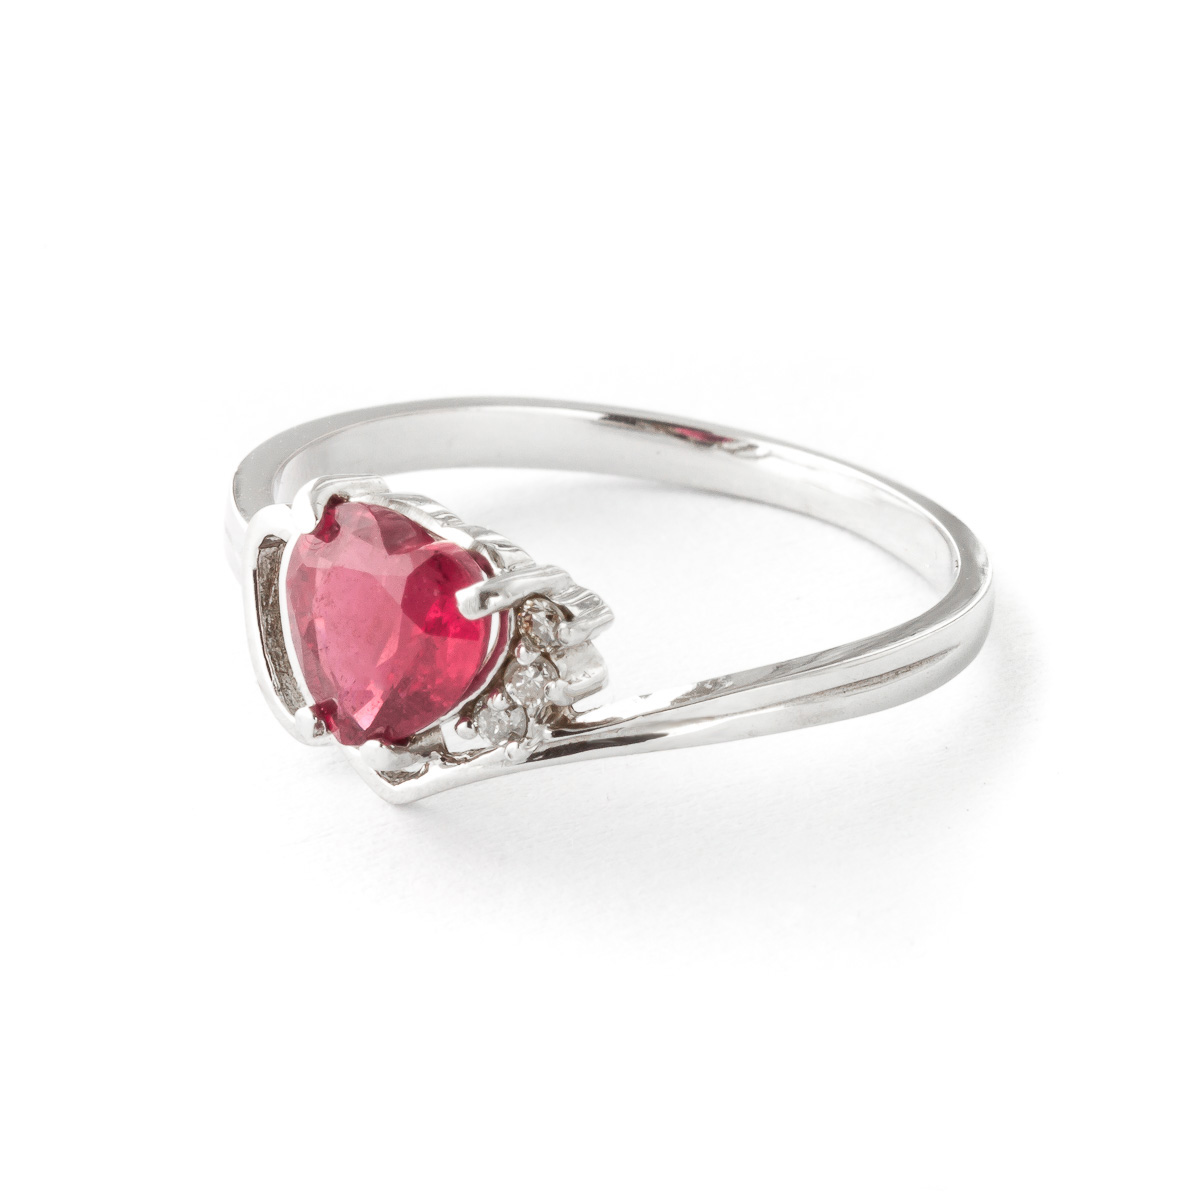 Ruby and Diamond Devotion Ring 1.0ct in 14K White Gold